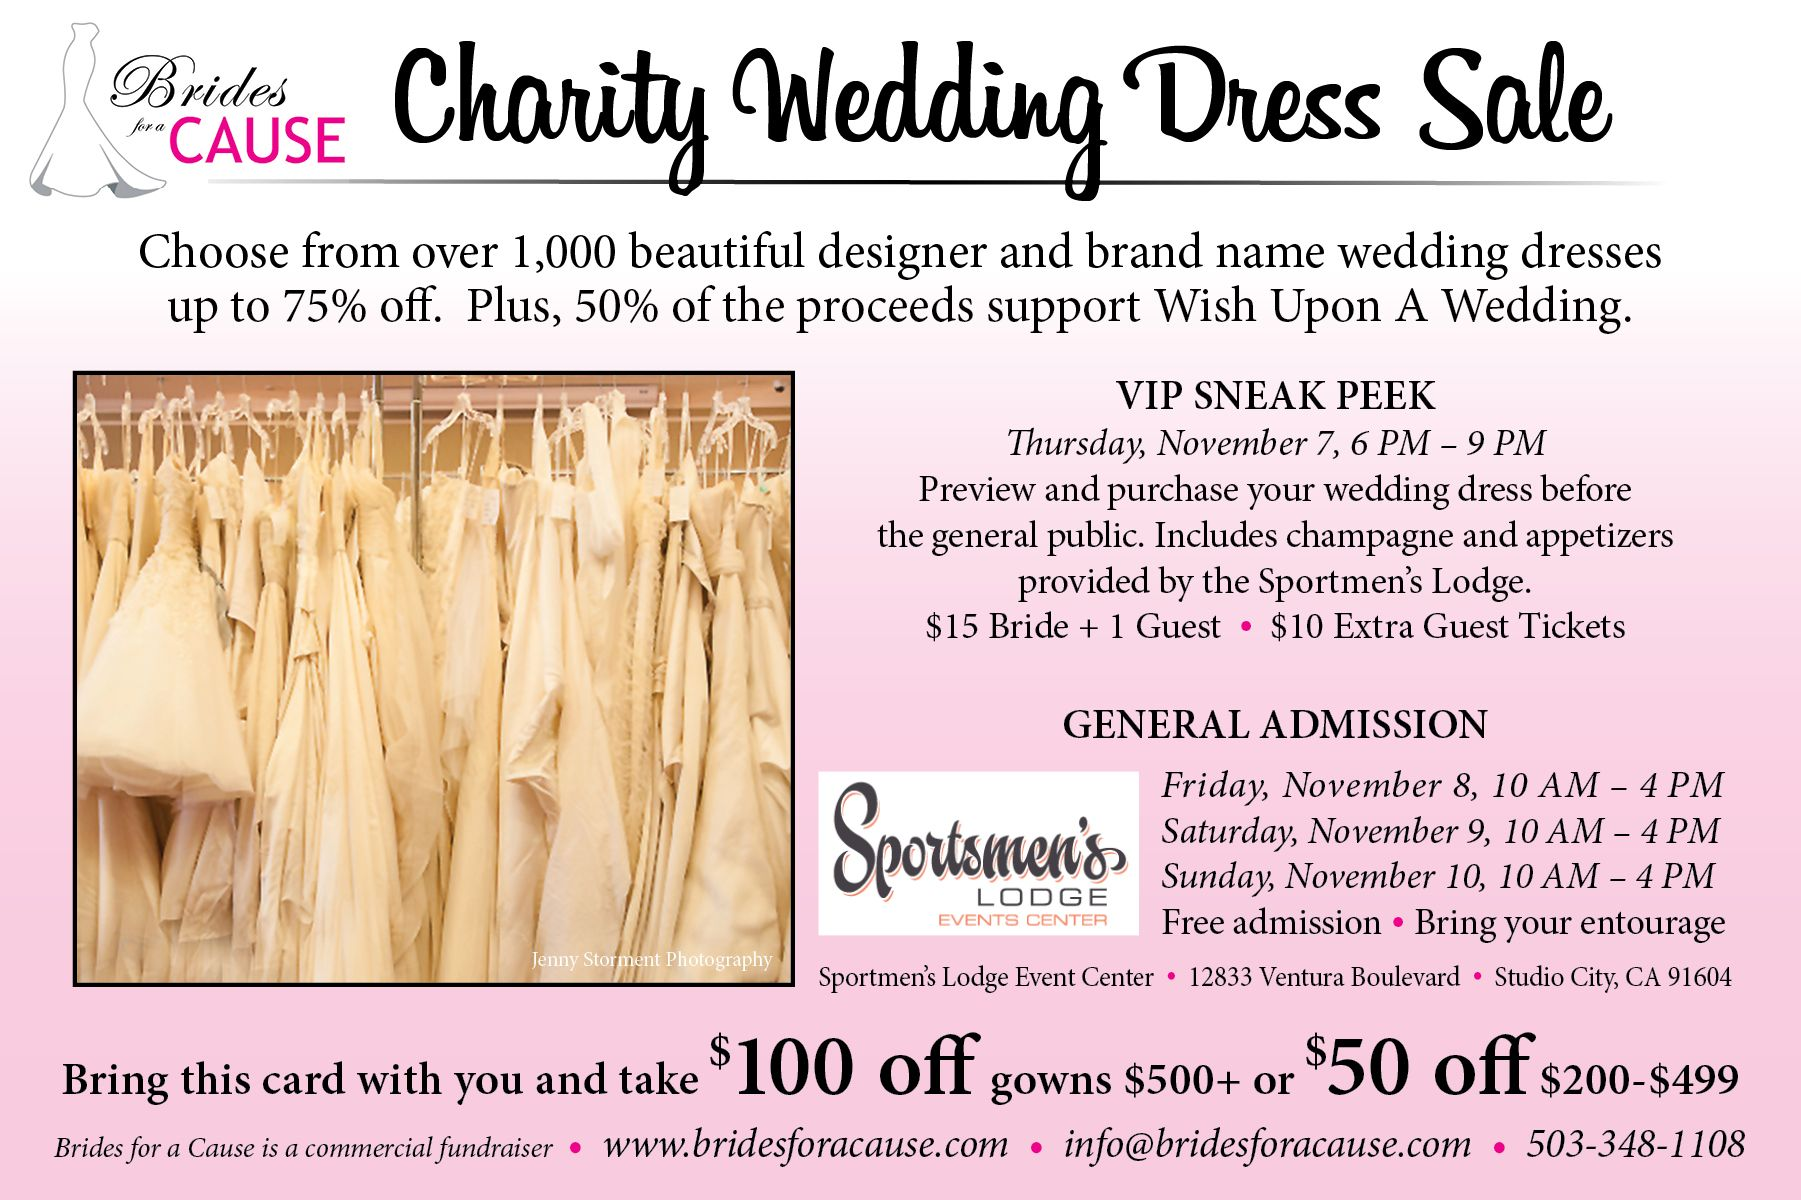 Brides for a Cause is holding a Charity Wedding Dress Sale in Los Angeles at the Sportsmen's Lodge in Studio City for 4 days only to support Wish Upon A Wedding. This is your chance to shop through 1,000+ wedding dresses all discounted up to 75% off! Top name designers and styles!